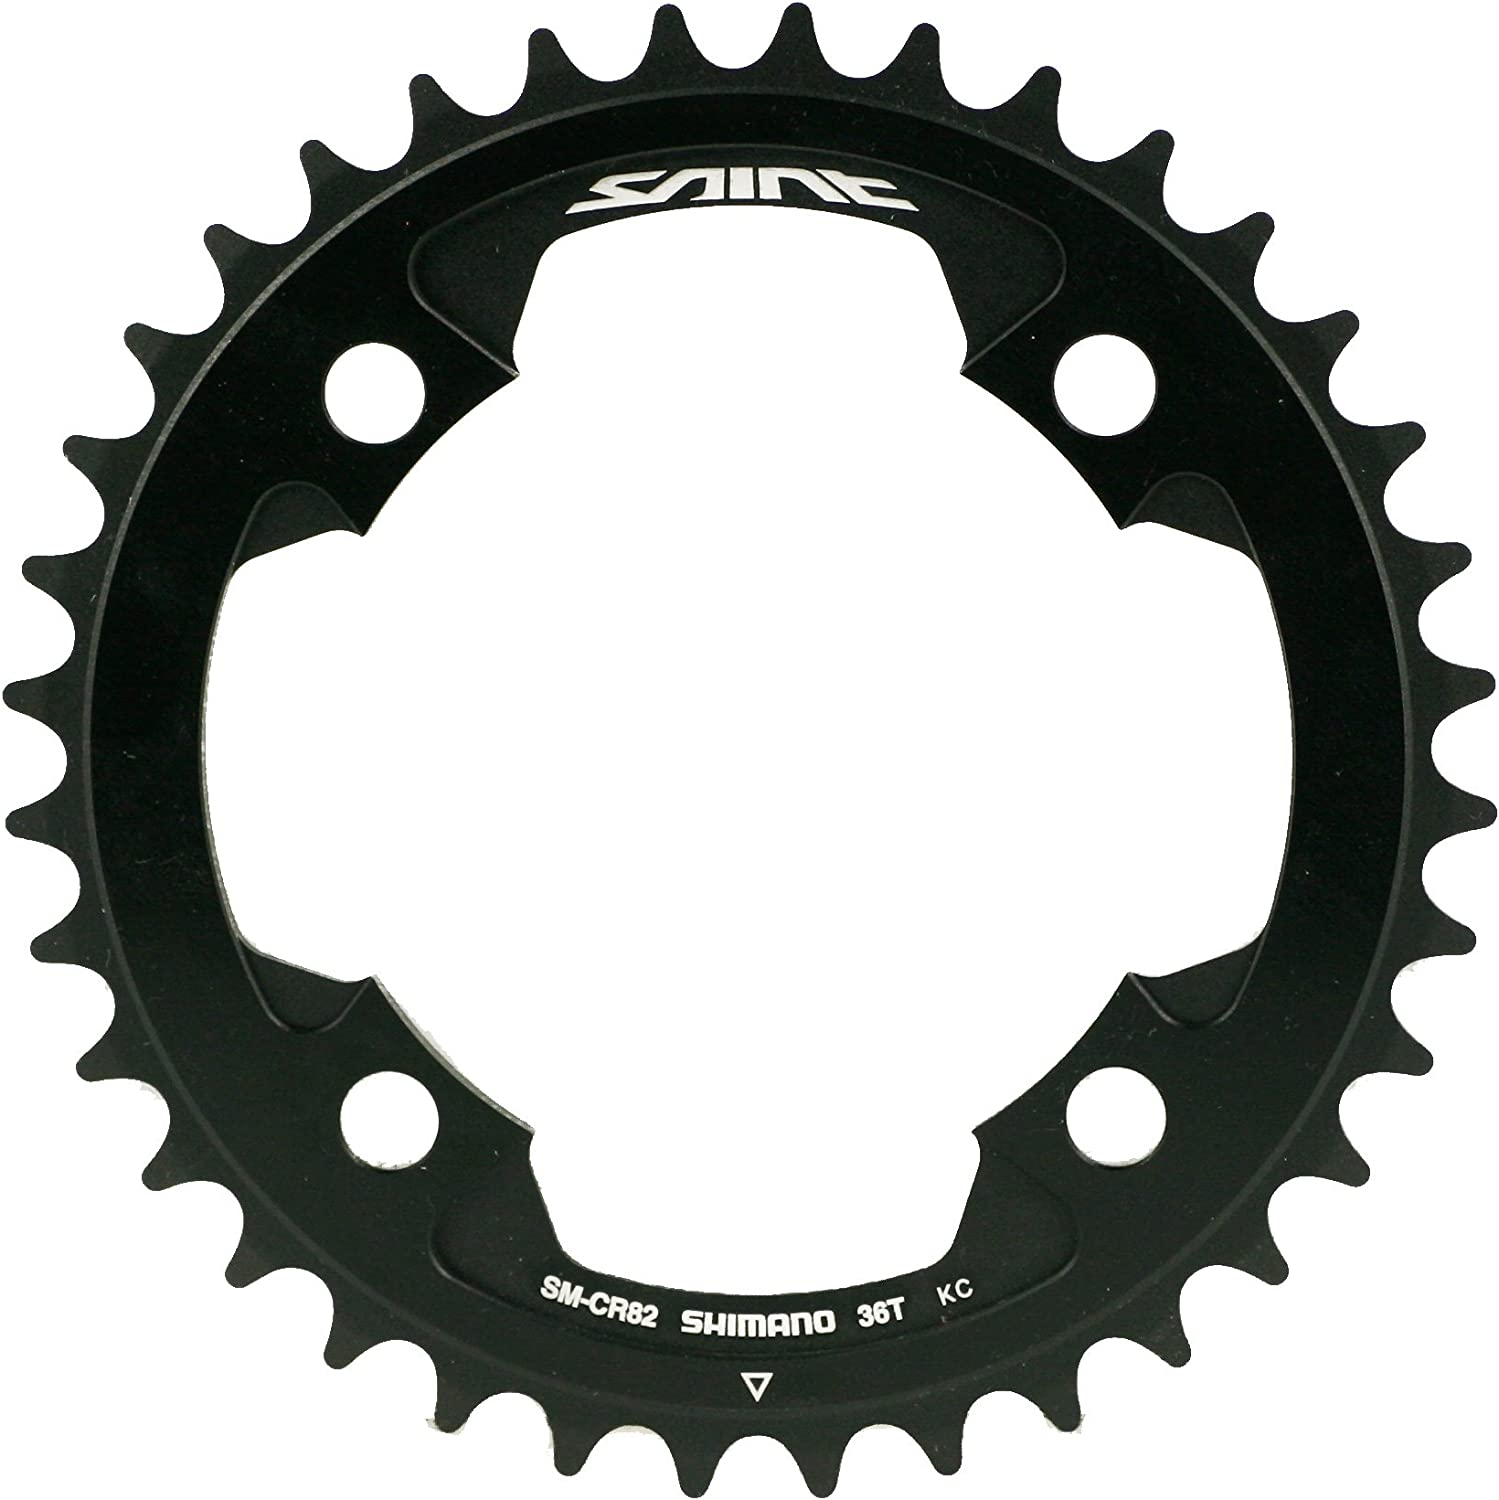 Shimano SM-Cr82 Choice Saint DH Speed Sale Special Price Single Chainring